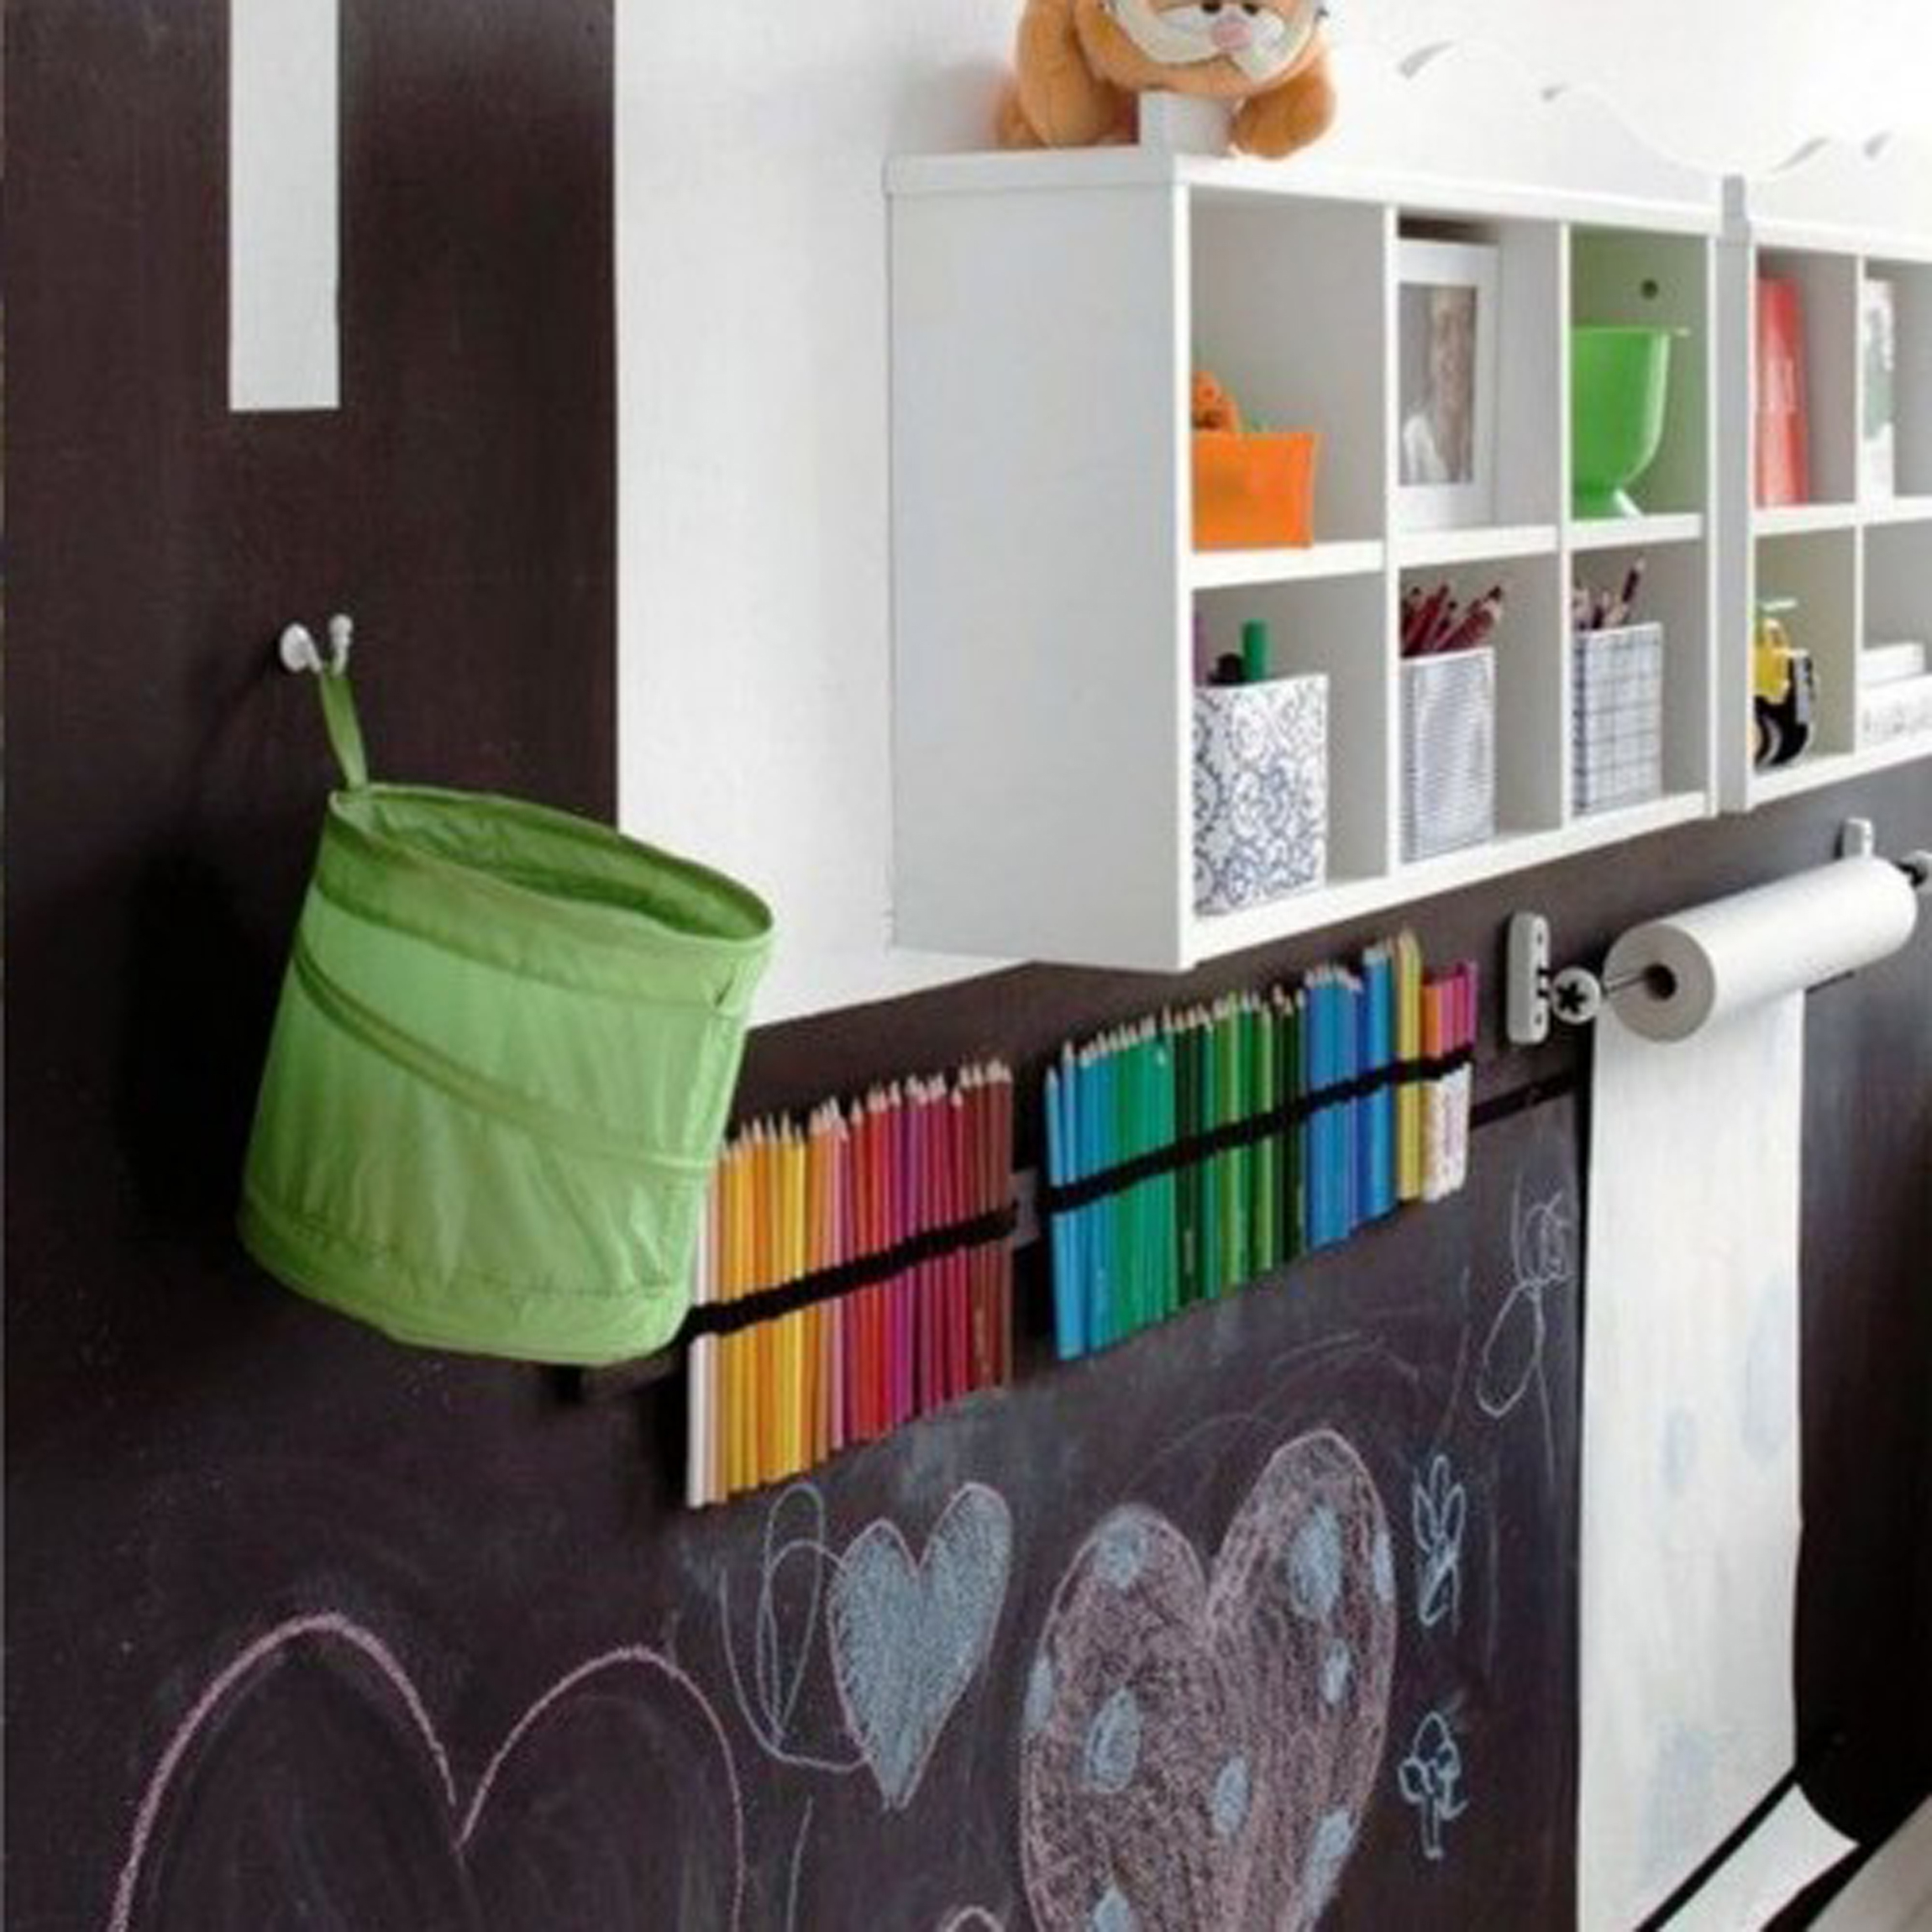 Kids Room Decor With Unique Chalkboard Decoration And Pretty Wall Mounted Shelves Design For Saving Toys And Books Plus Agreeable Paper Roll For Kids Drawing Workspace (Image 24 of 28)